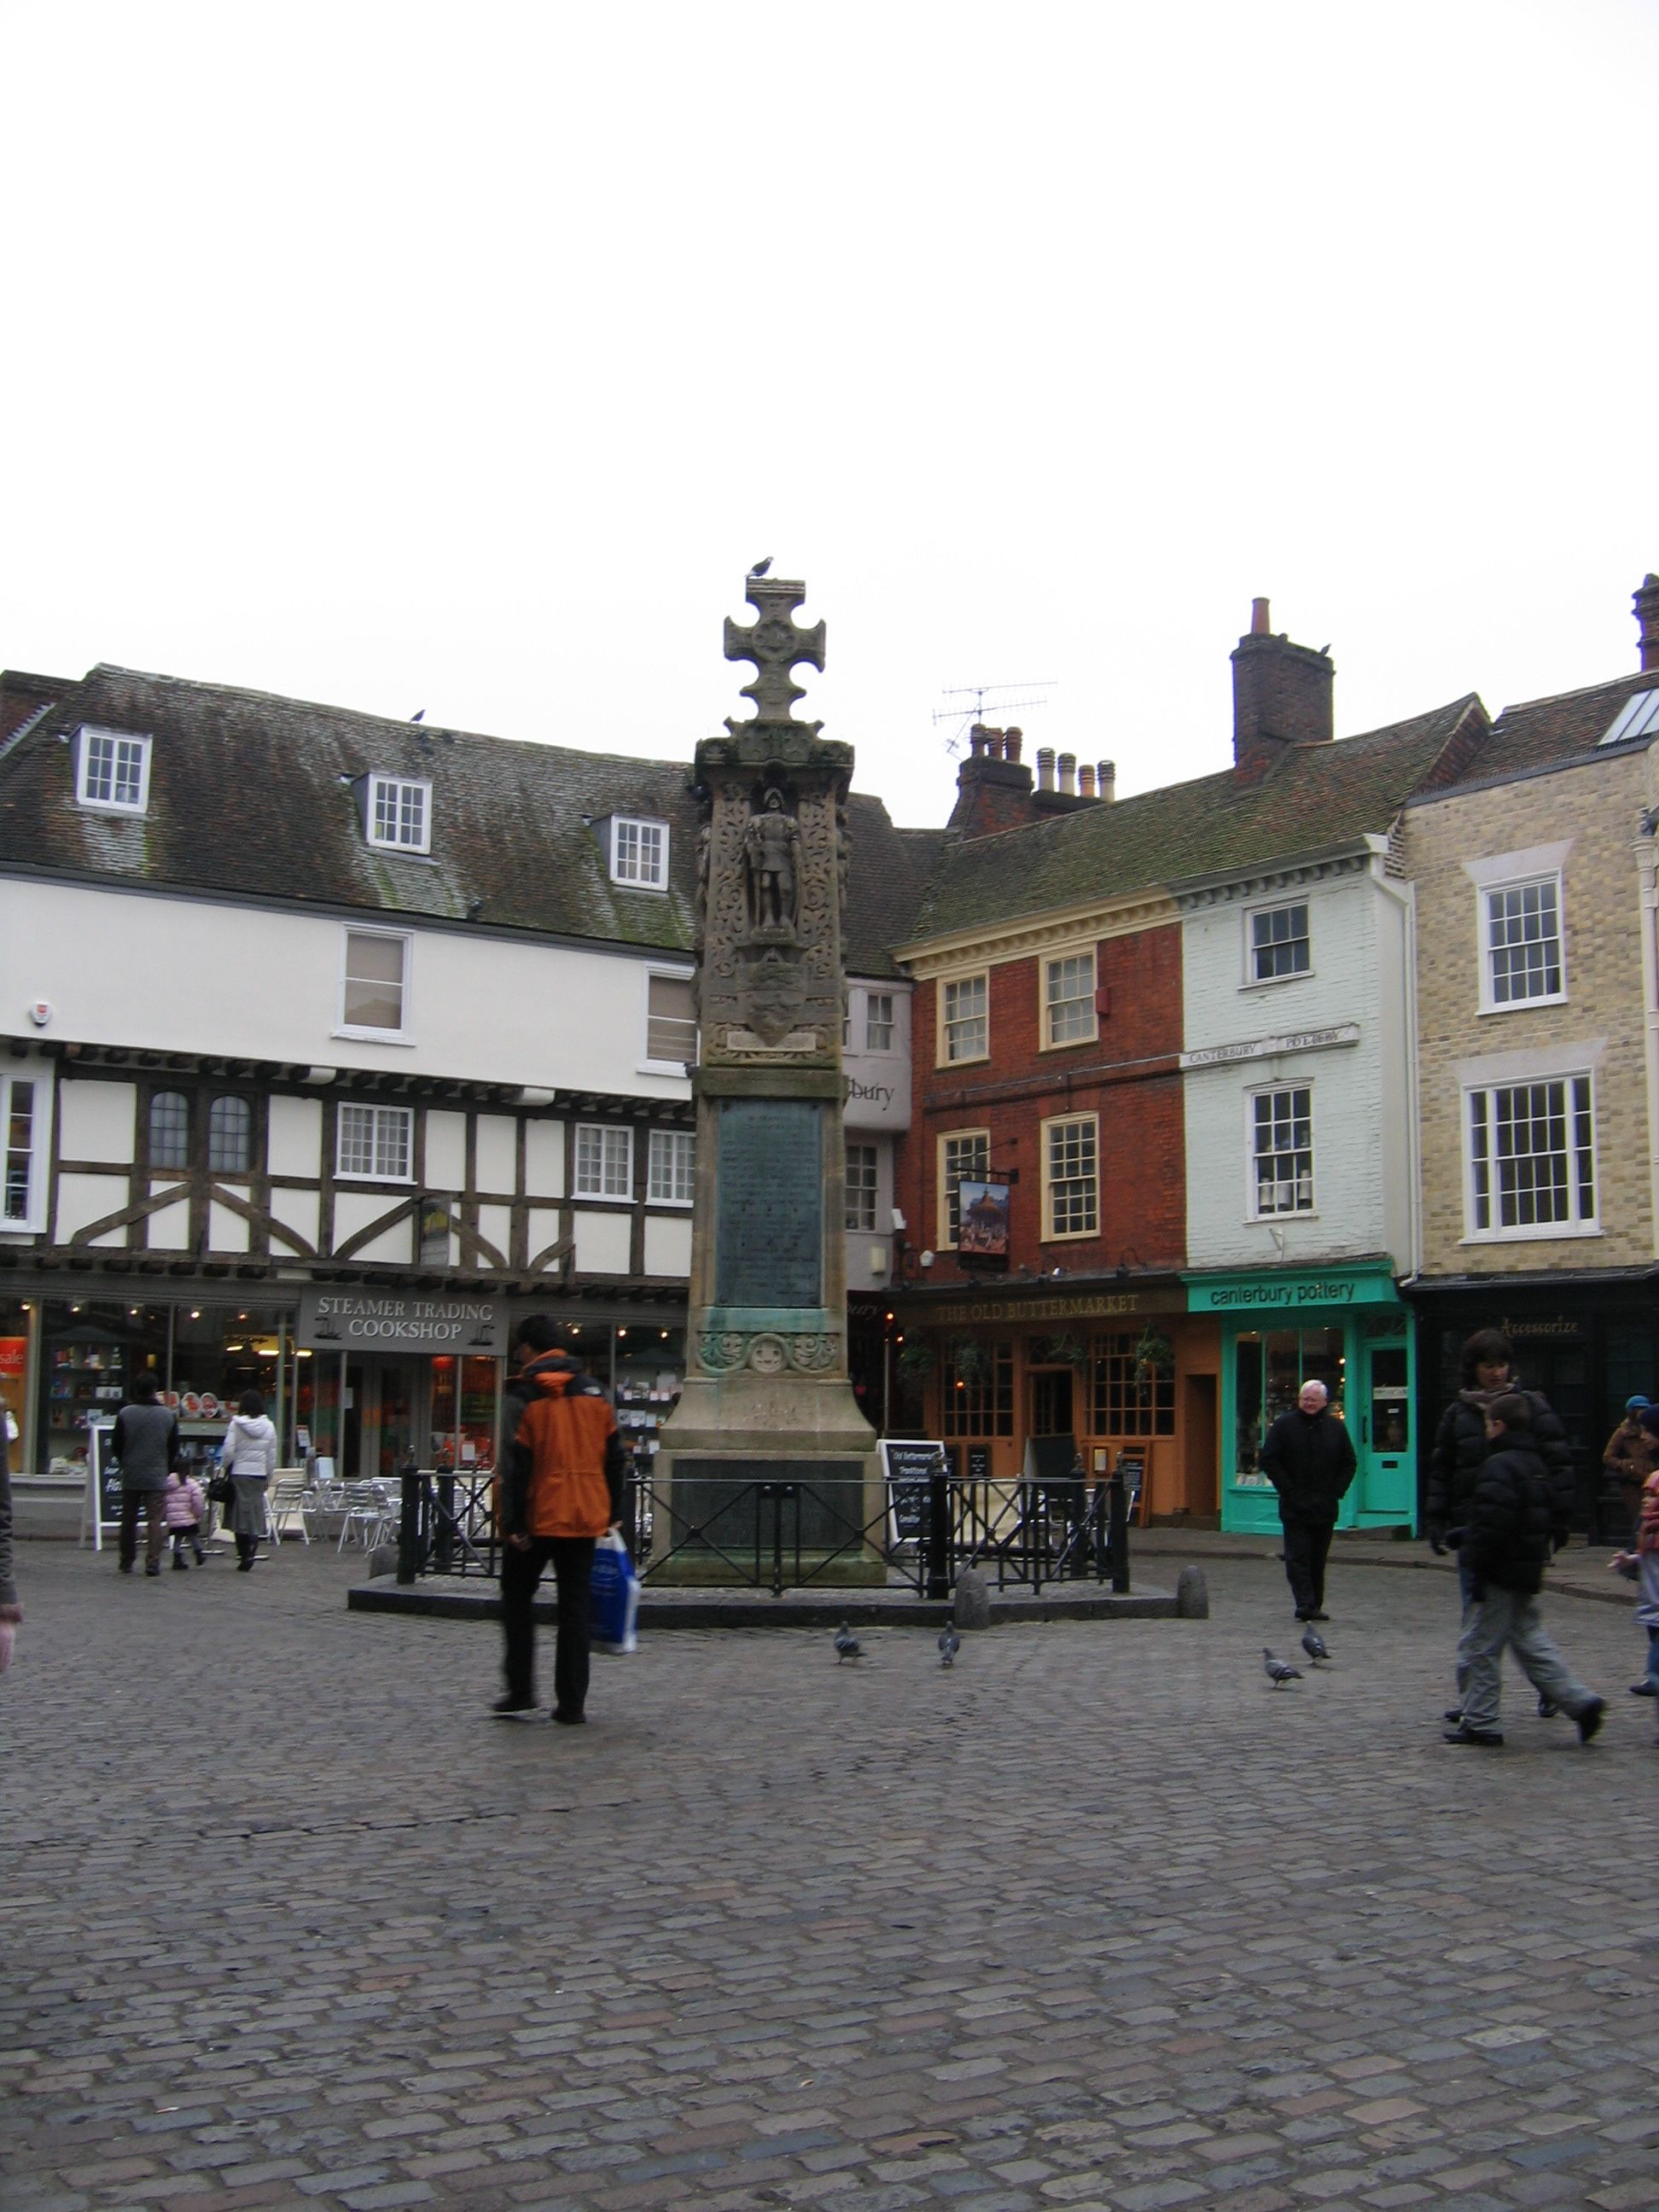 Canterbury town centre, England. | Places on the Map ... on city map of edinburgh, city map of abbotsford, city map of bexley, city map of lindisfarne, city map of leominster, city map of glasgow,